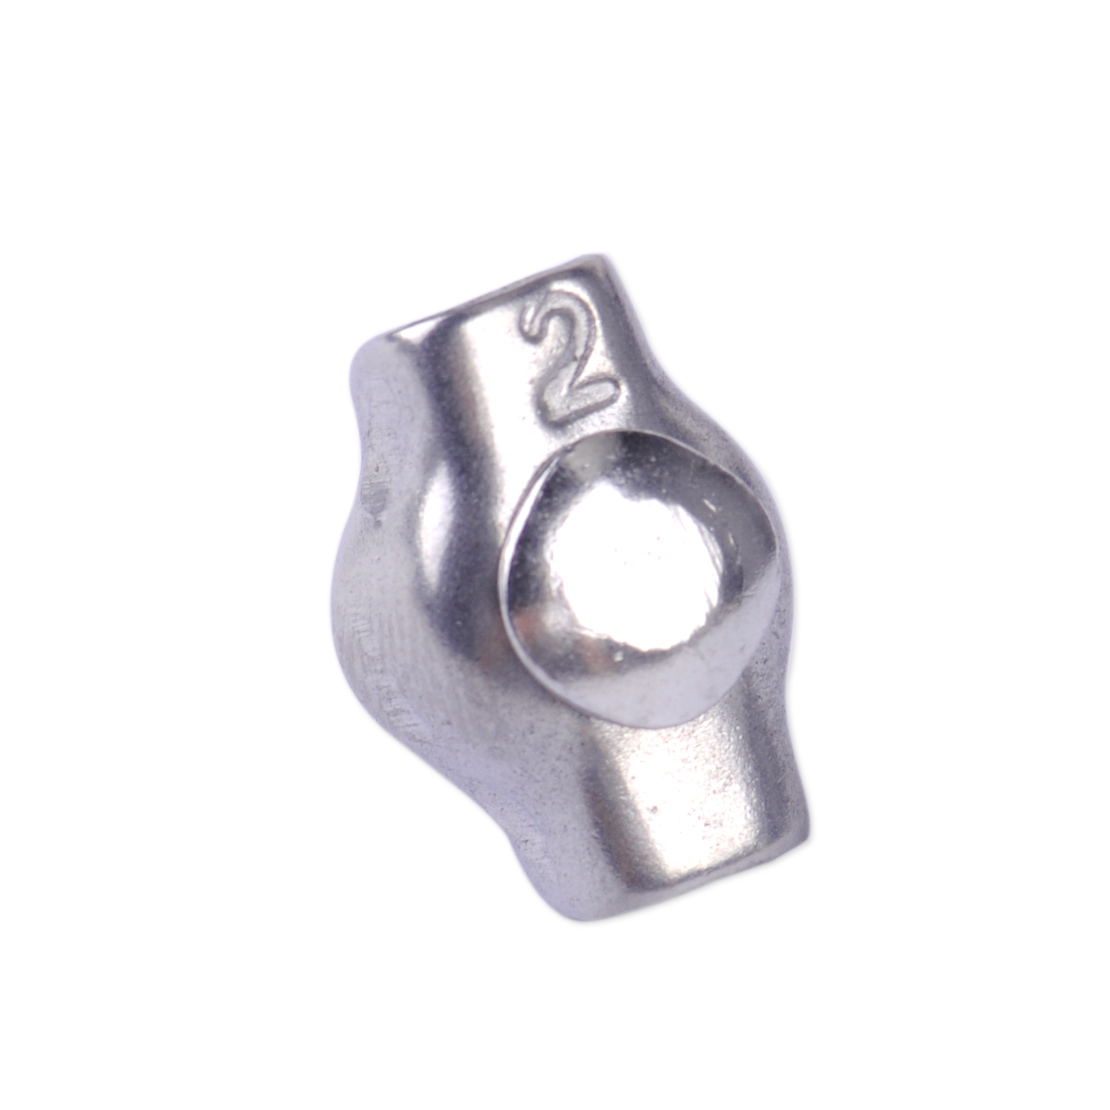 Stainless steel wire rope simplex clip grips cable